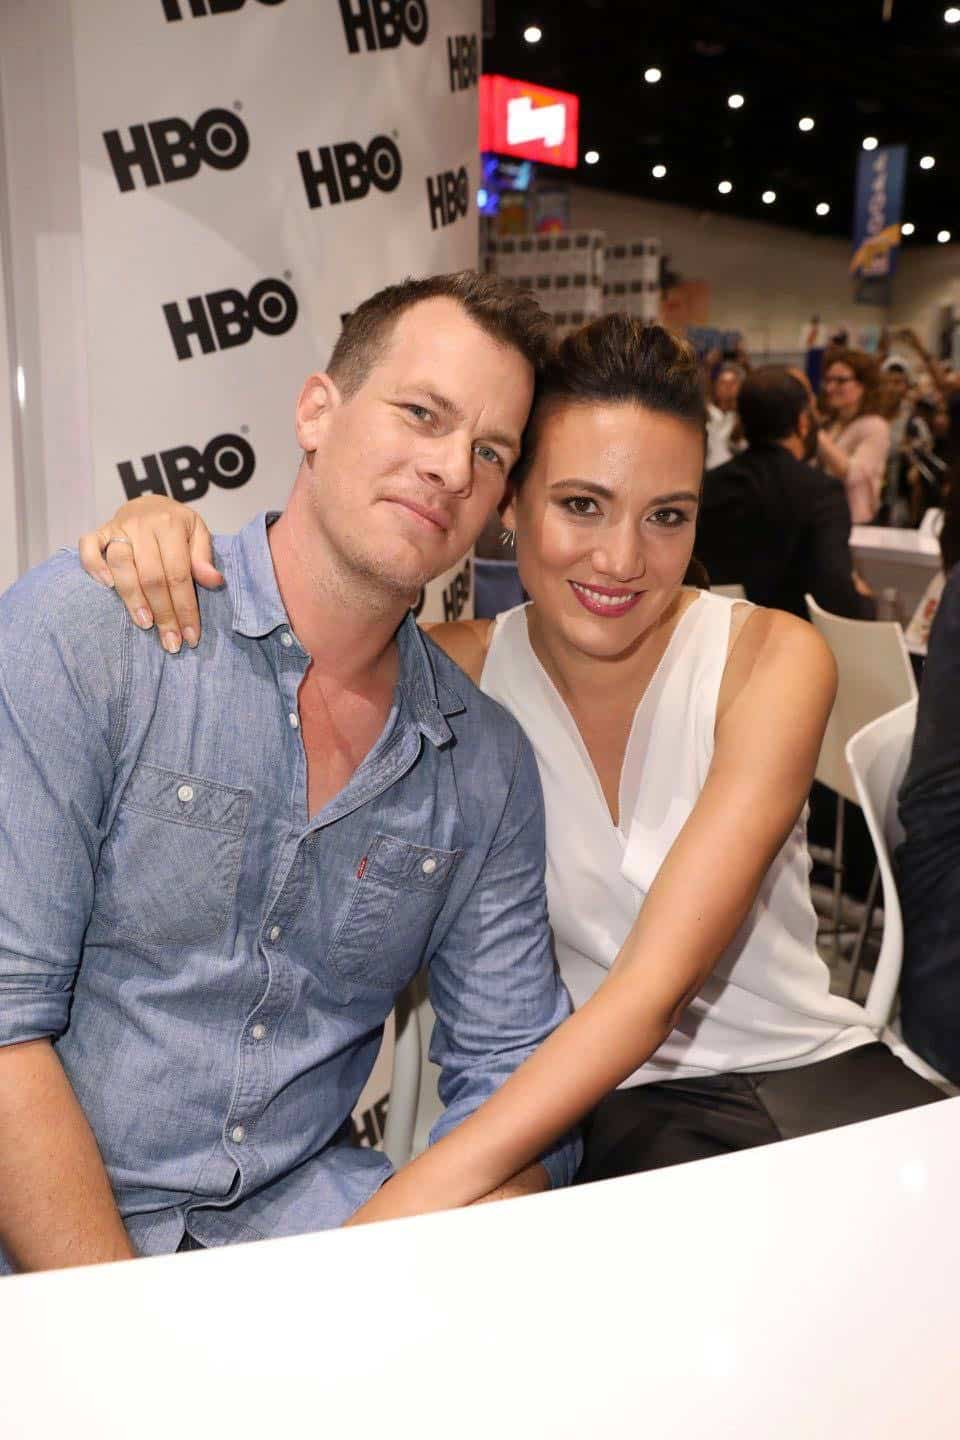 WESTWORLD co-creator/executive producer Jonathan Nolan and co-creator/executive producer Lisa Joy capture the moment at the Warner Bros. booth at Comic-Con 2017 on Saturday, July 22. #WBSDCC (© 2017 WBEI. All Rights Reserved)